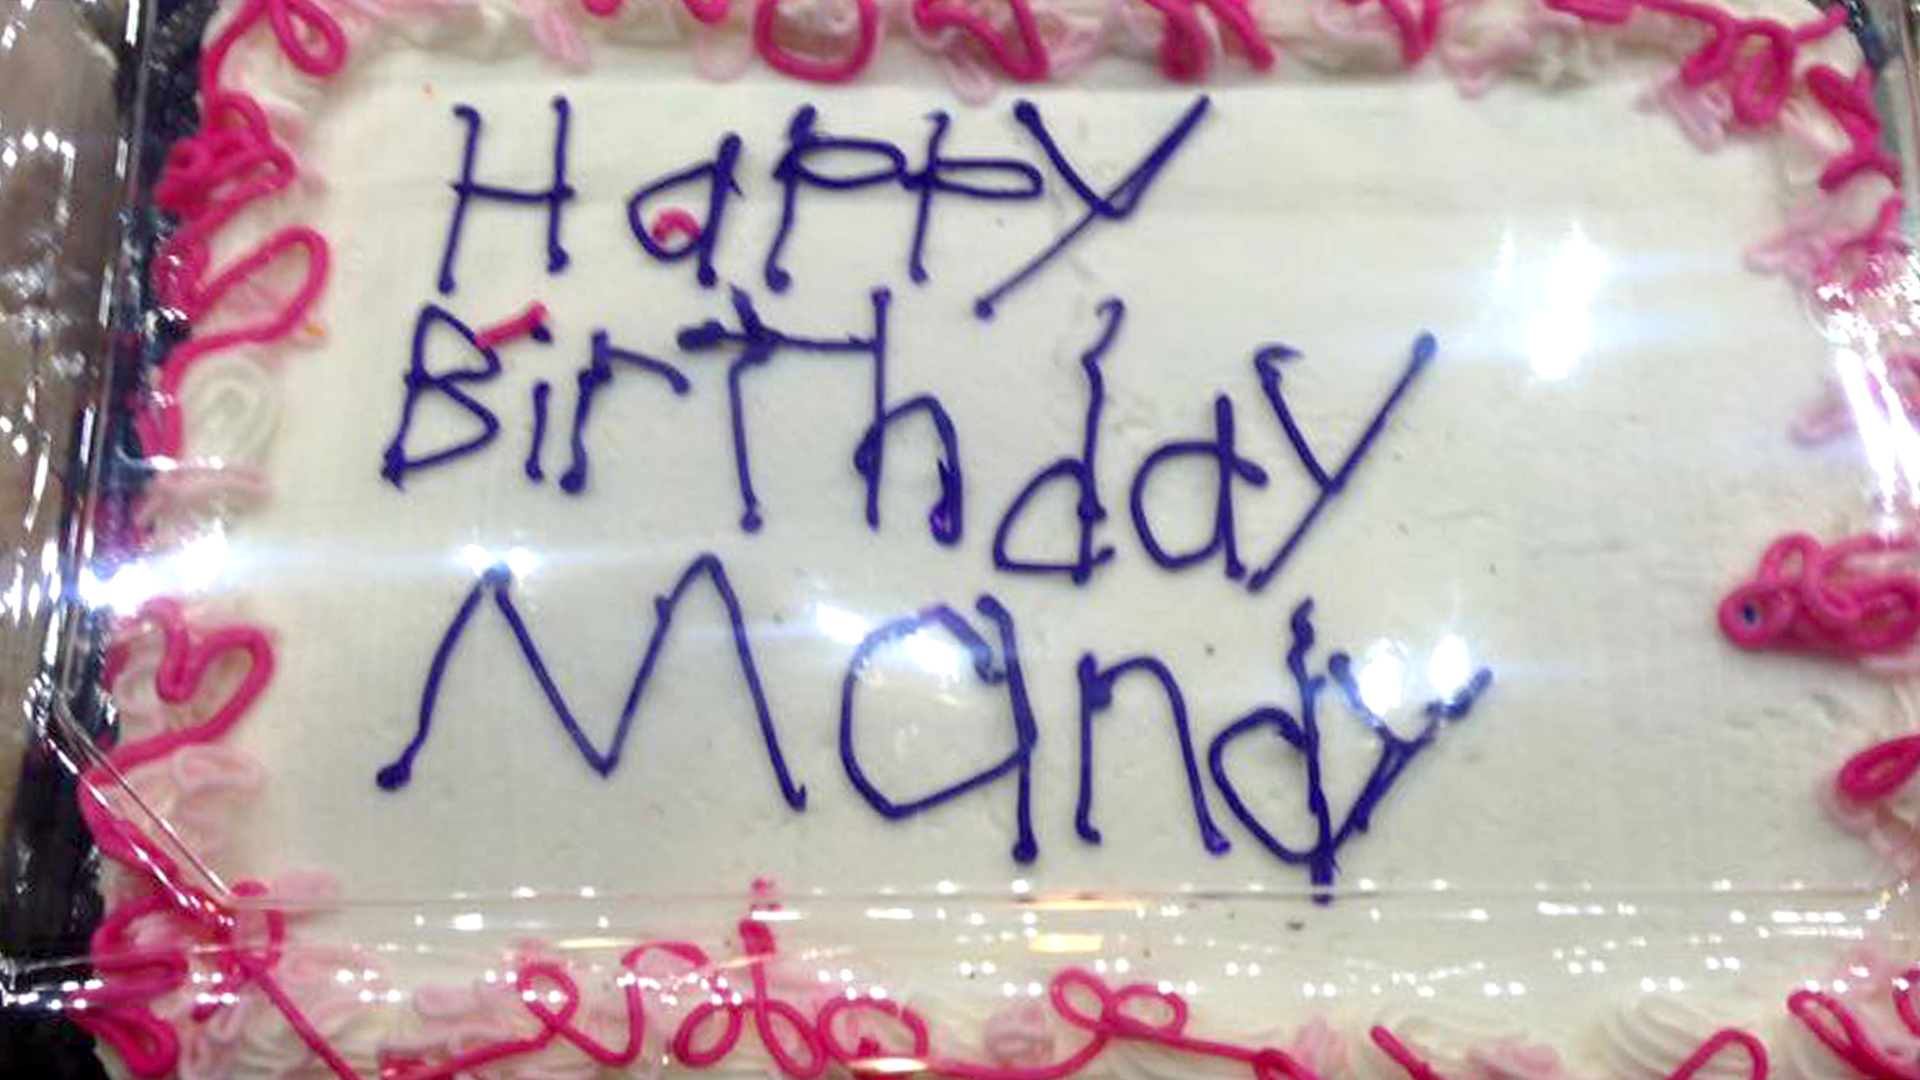 Heartwarming Story Behind Meijer Bought Birthday Cake Melts Internet